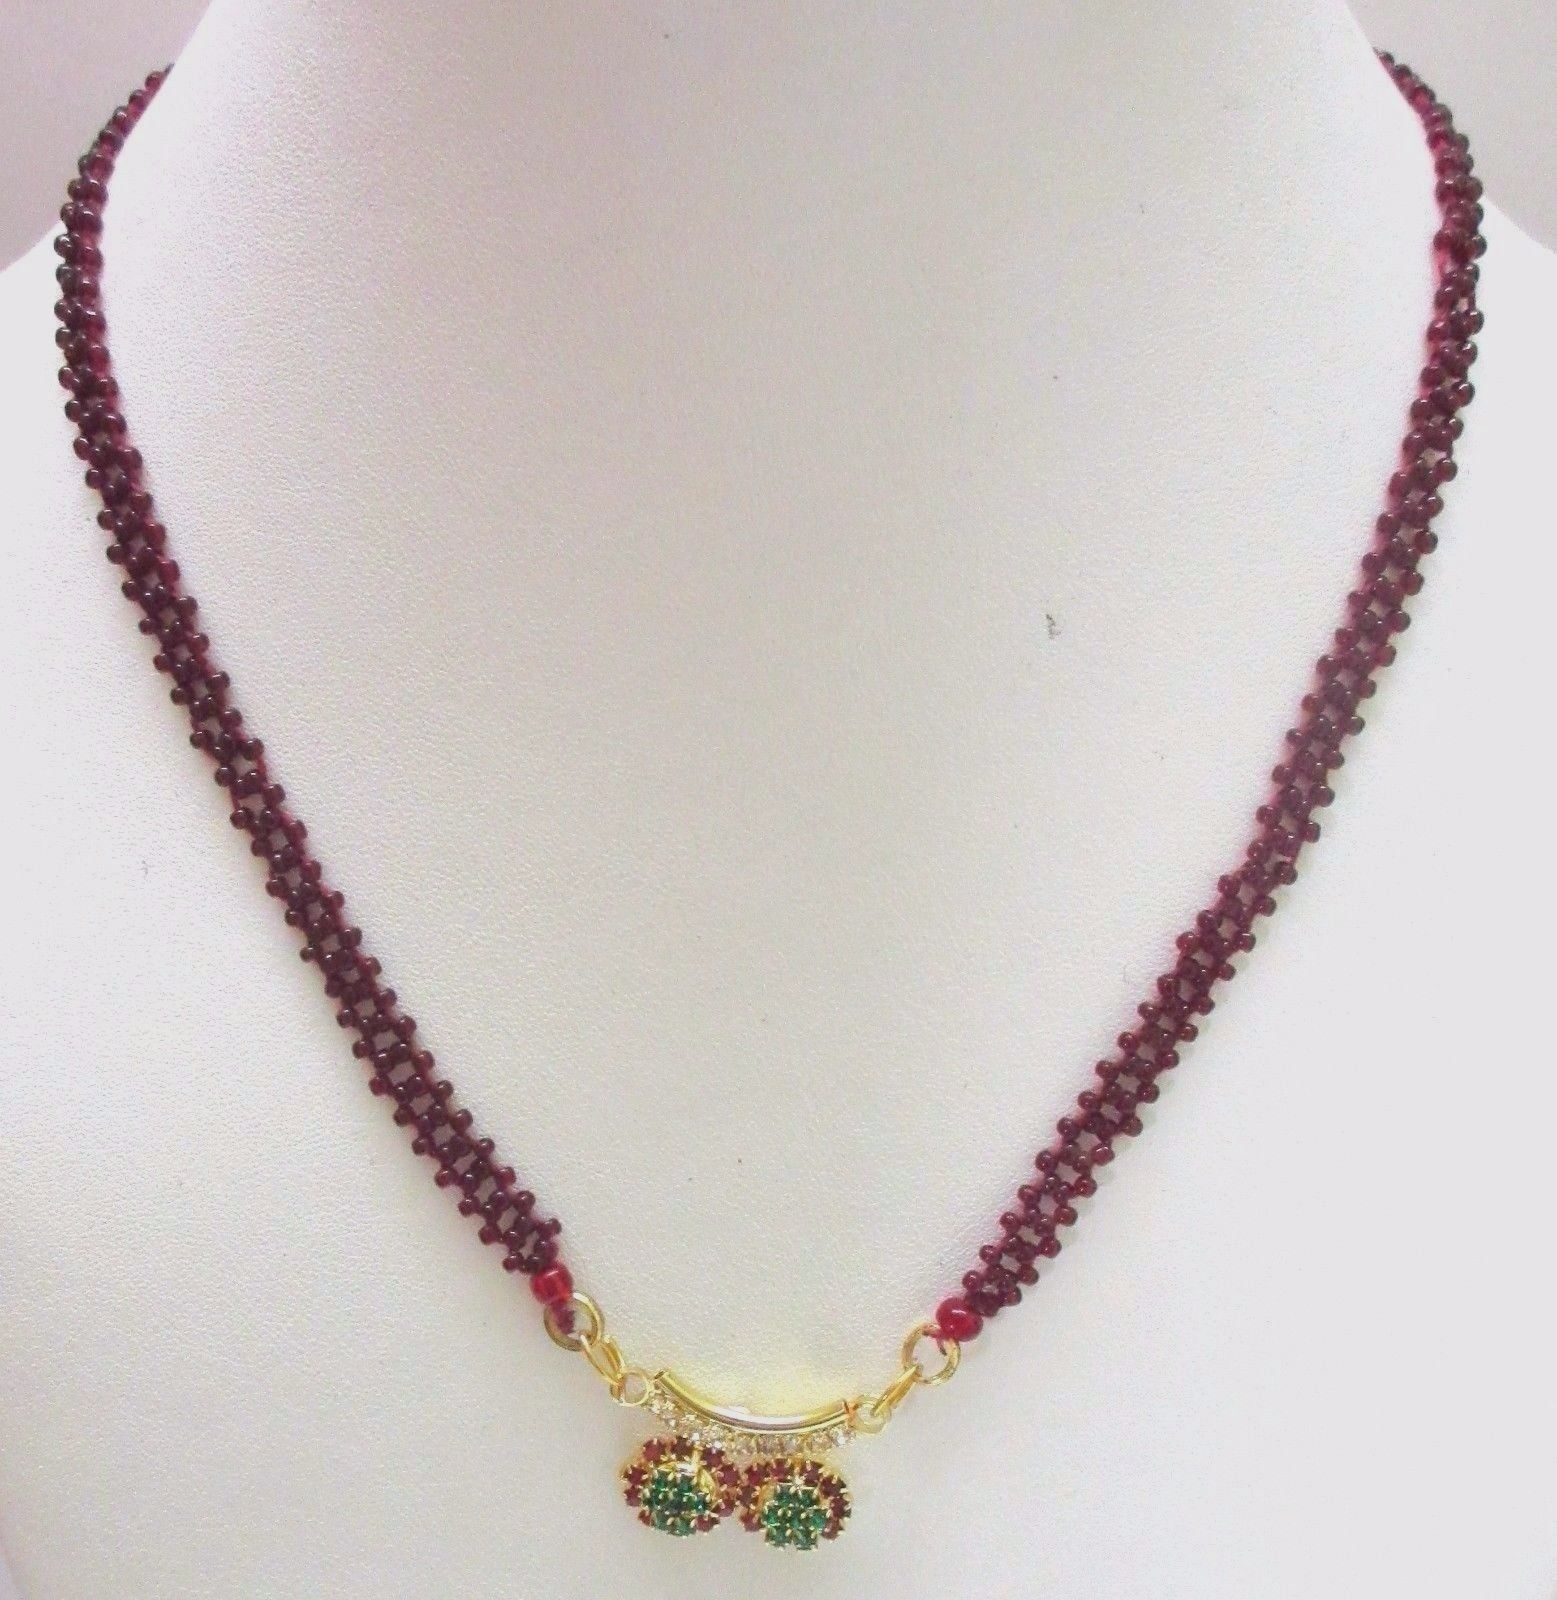 Indian Traditional Bollywood Bridal Red Gold Plated CZ Fashion Jewelry Necklace image 3